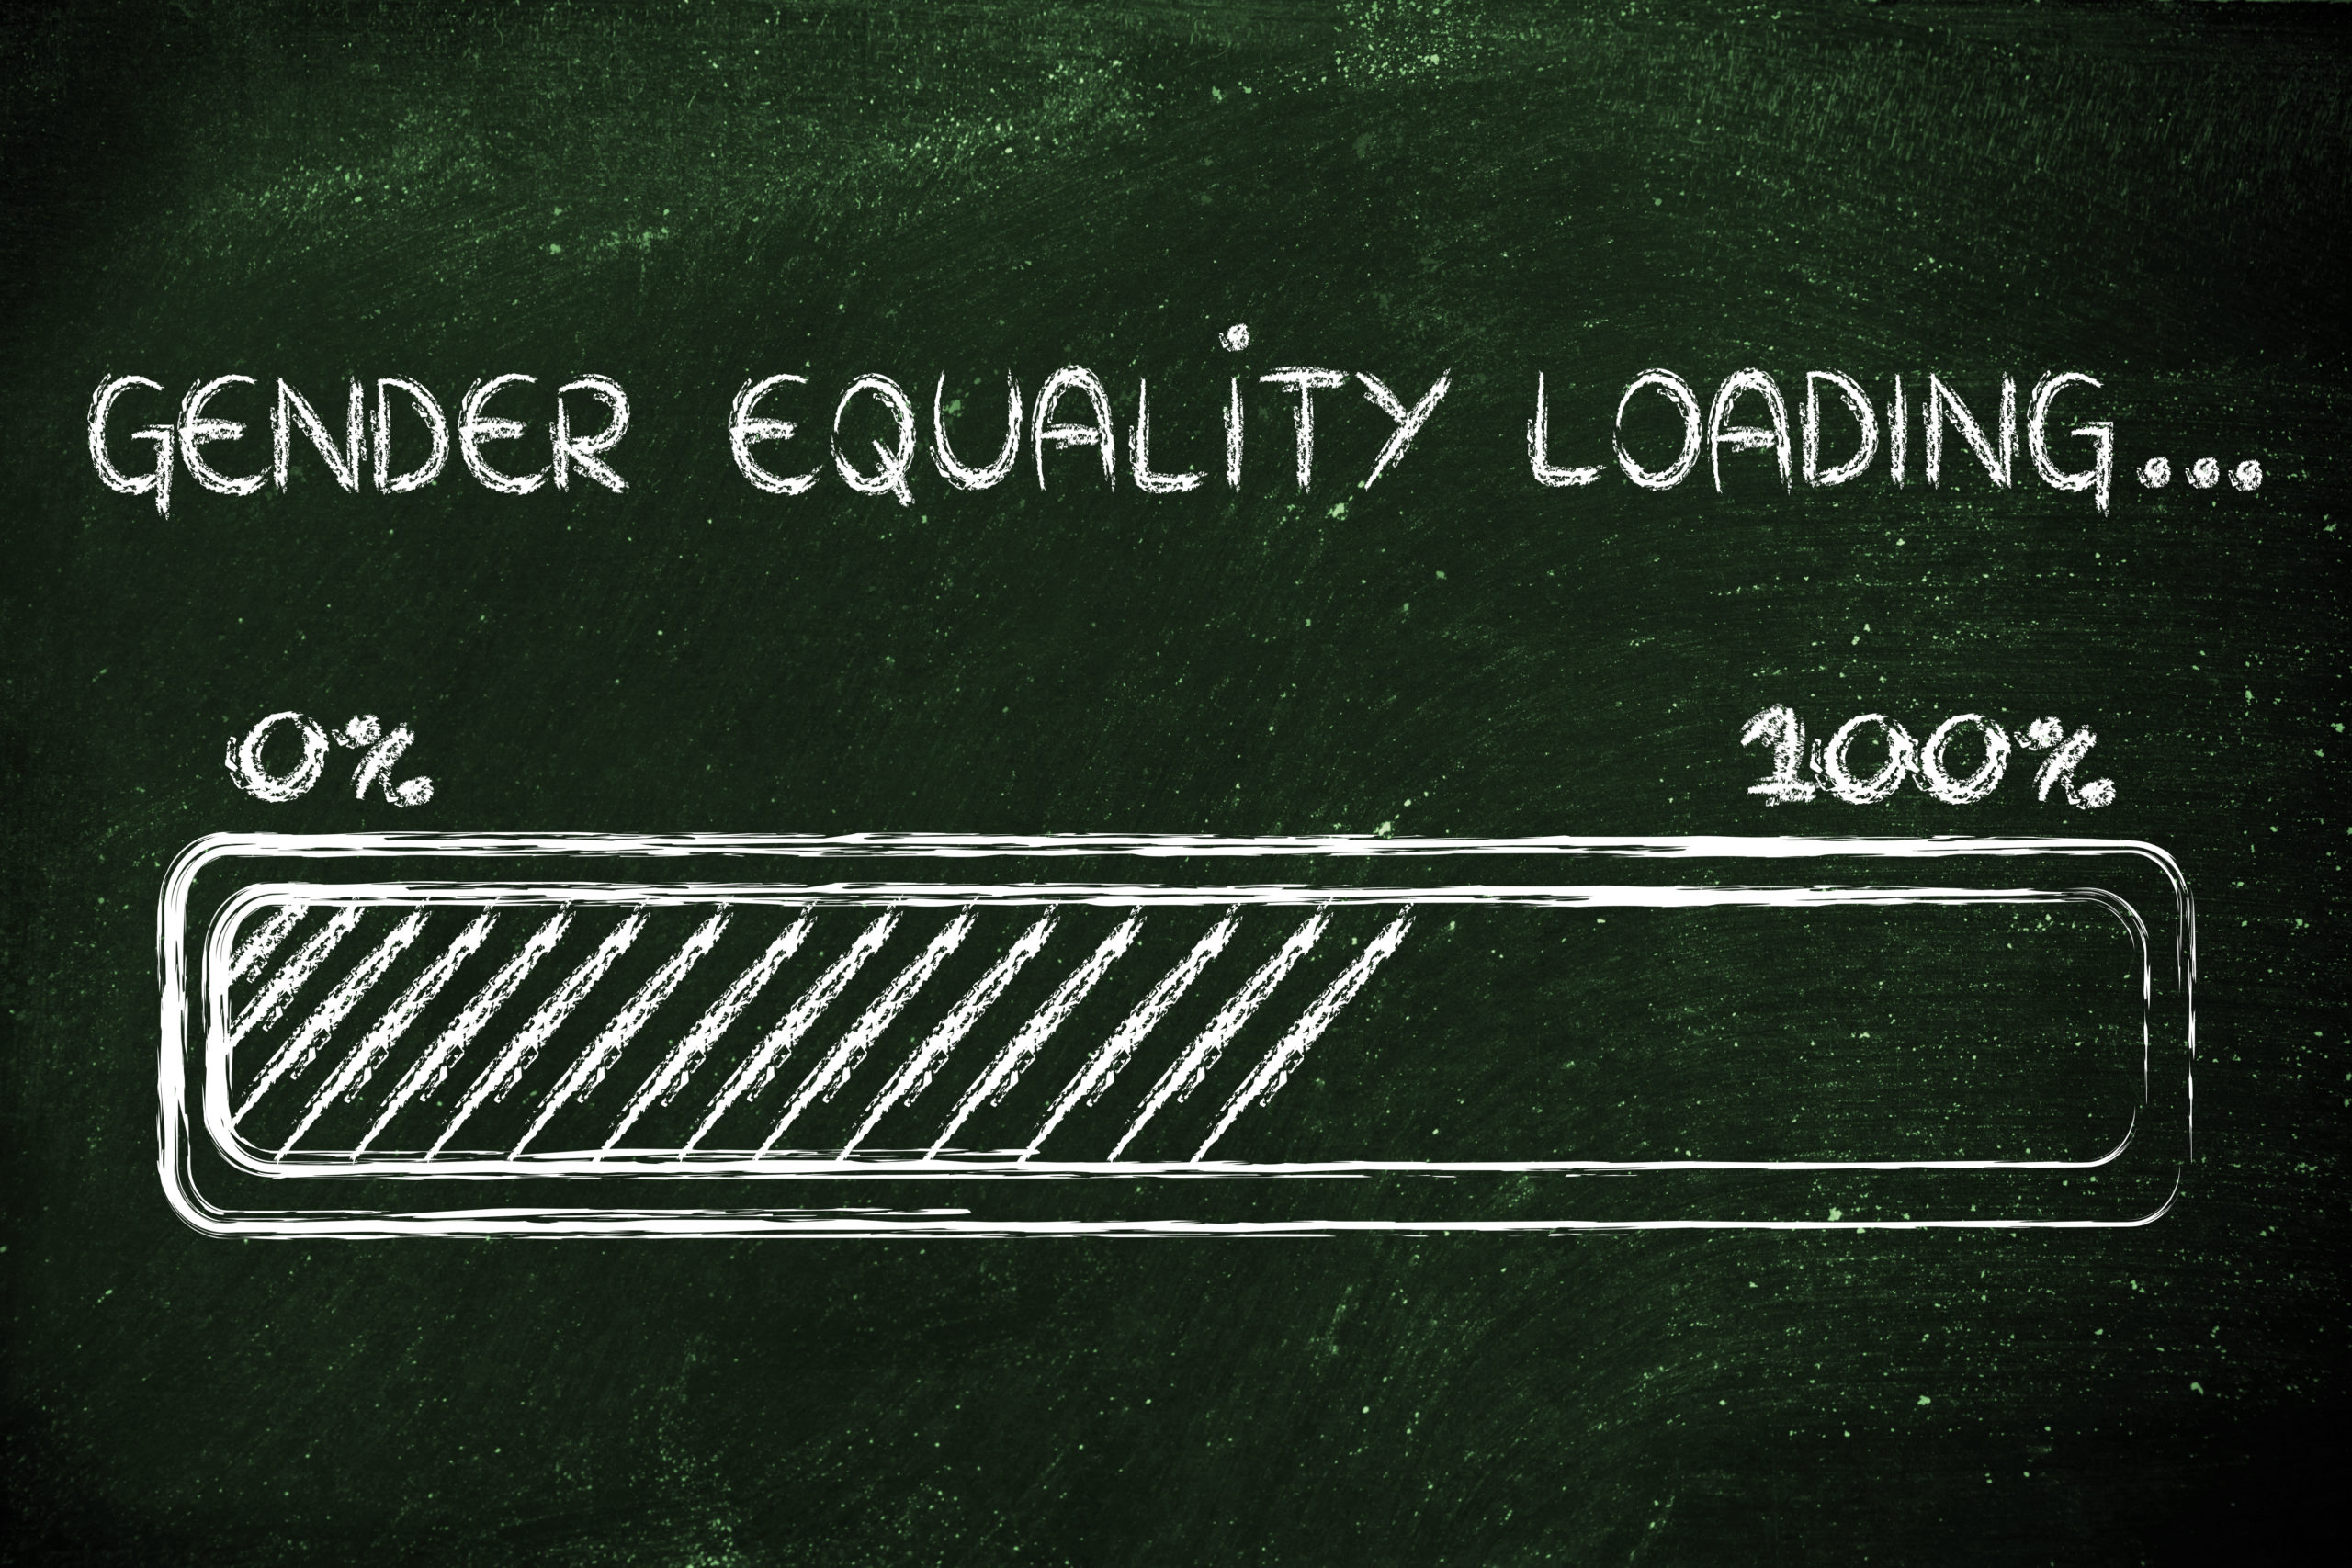 progress bar metaphorically loading more gender equality